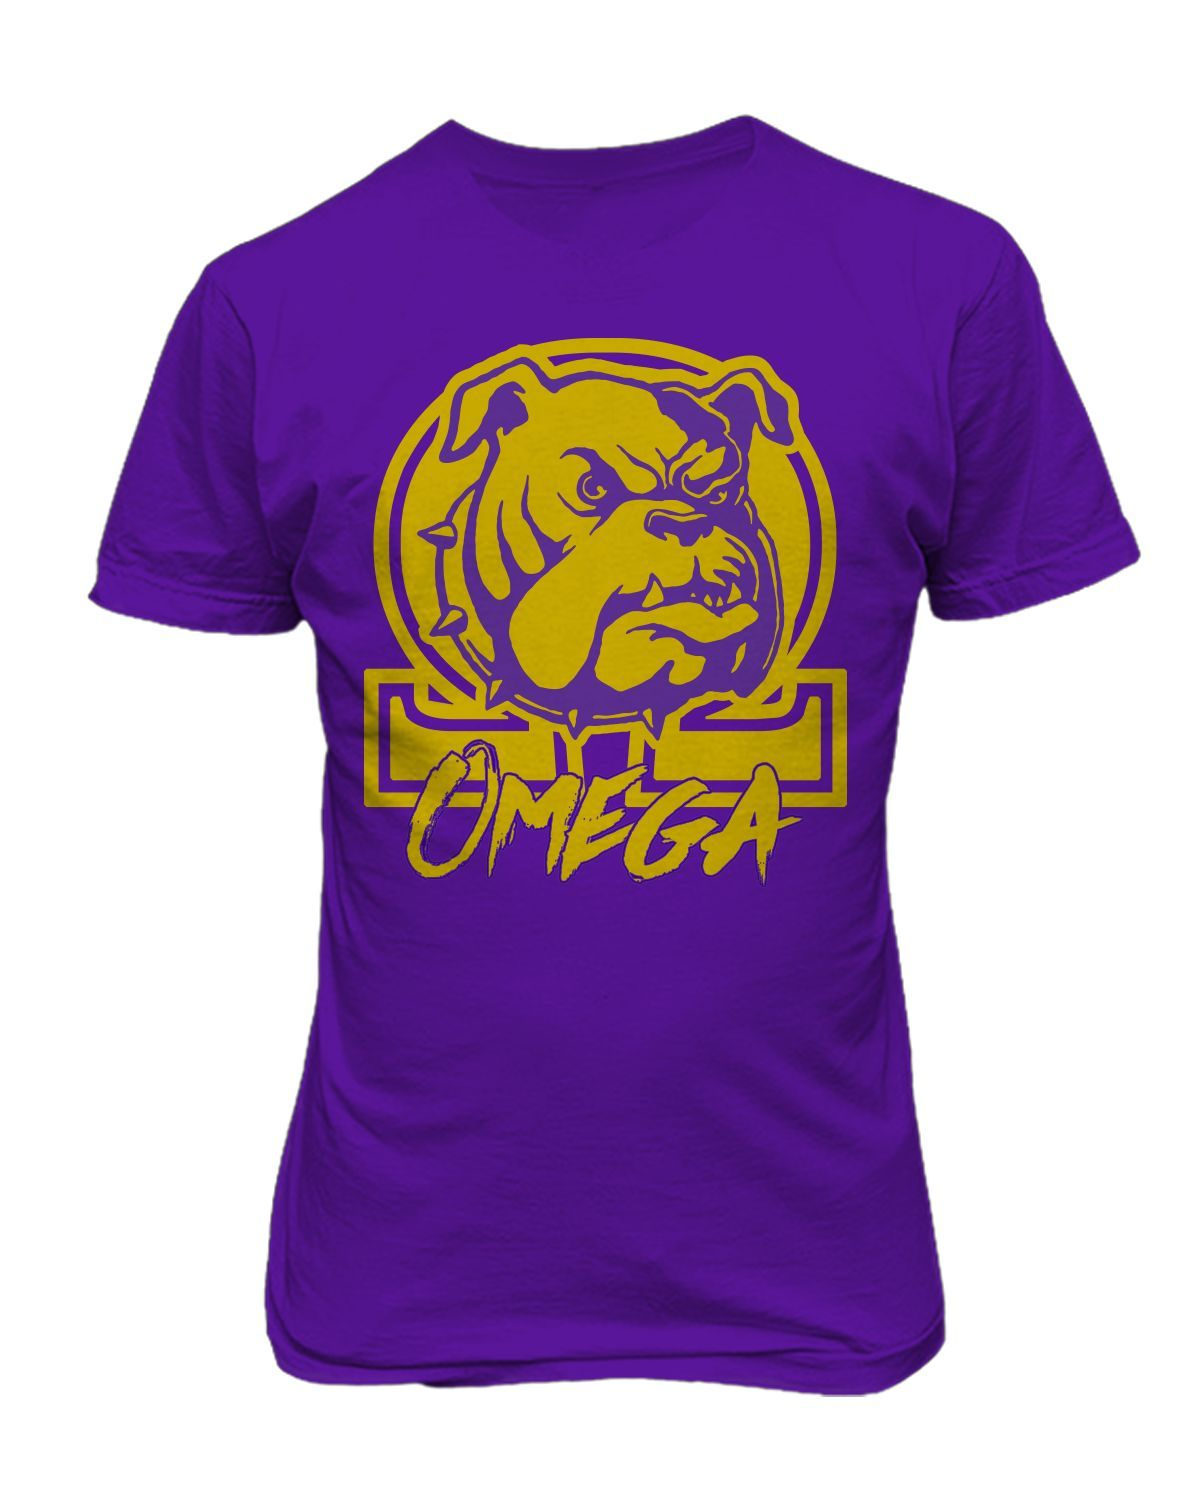 Omega psi phi varsity purple omega psi phi and omega omega buycottarizona Image collections